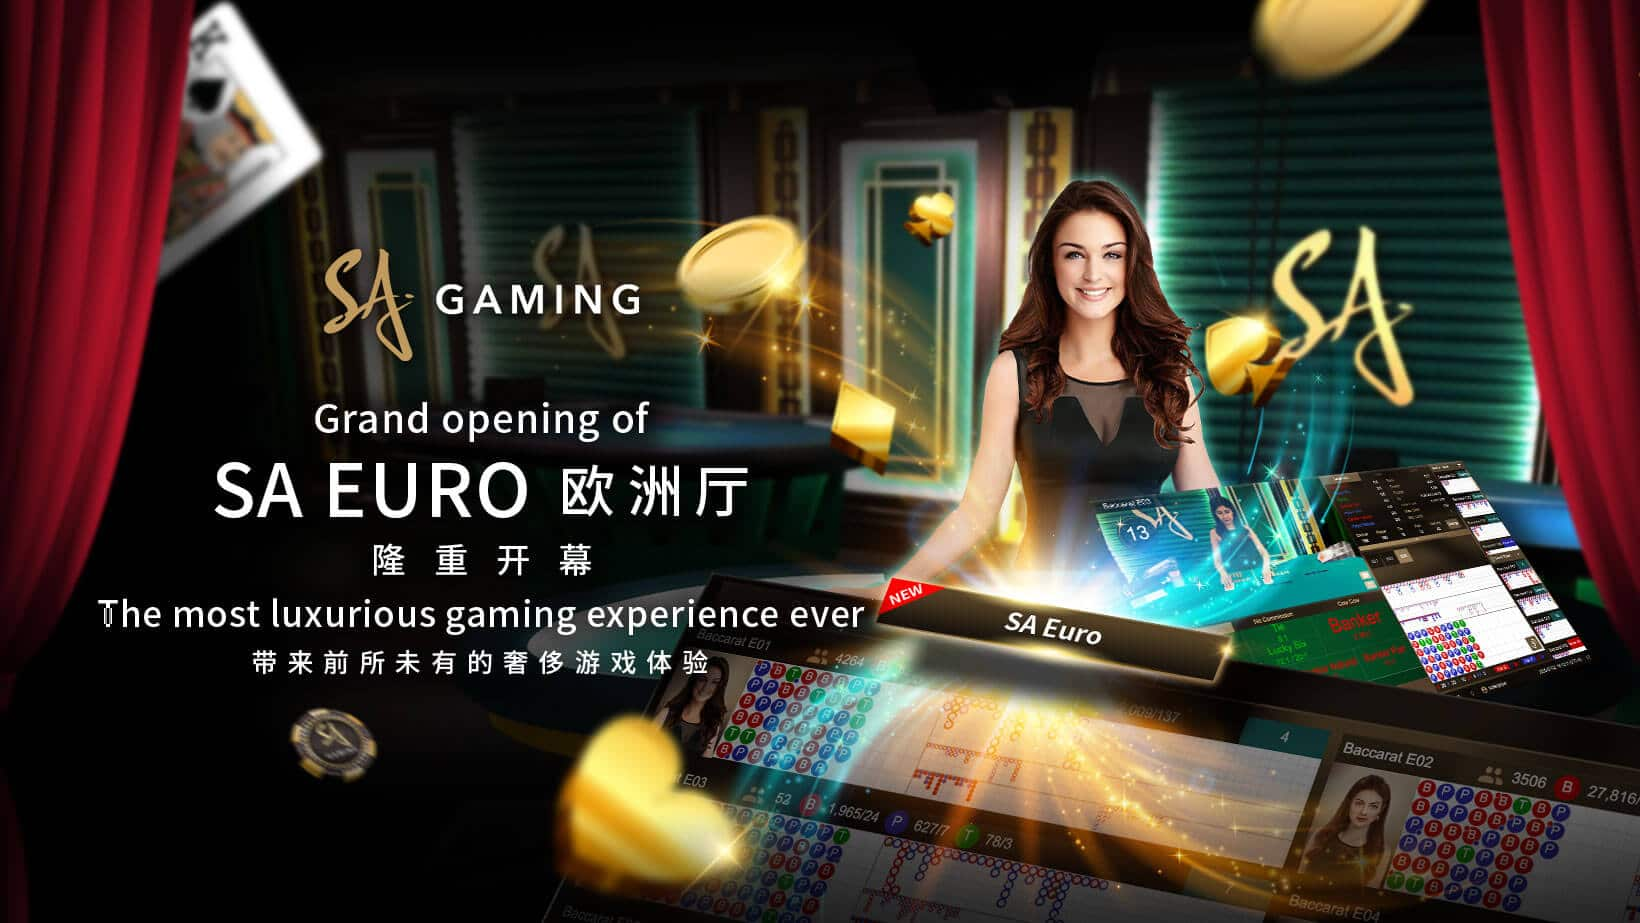 SA Gaming New Euro Hall